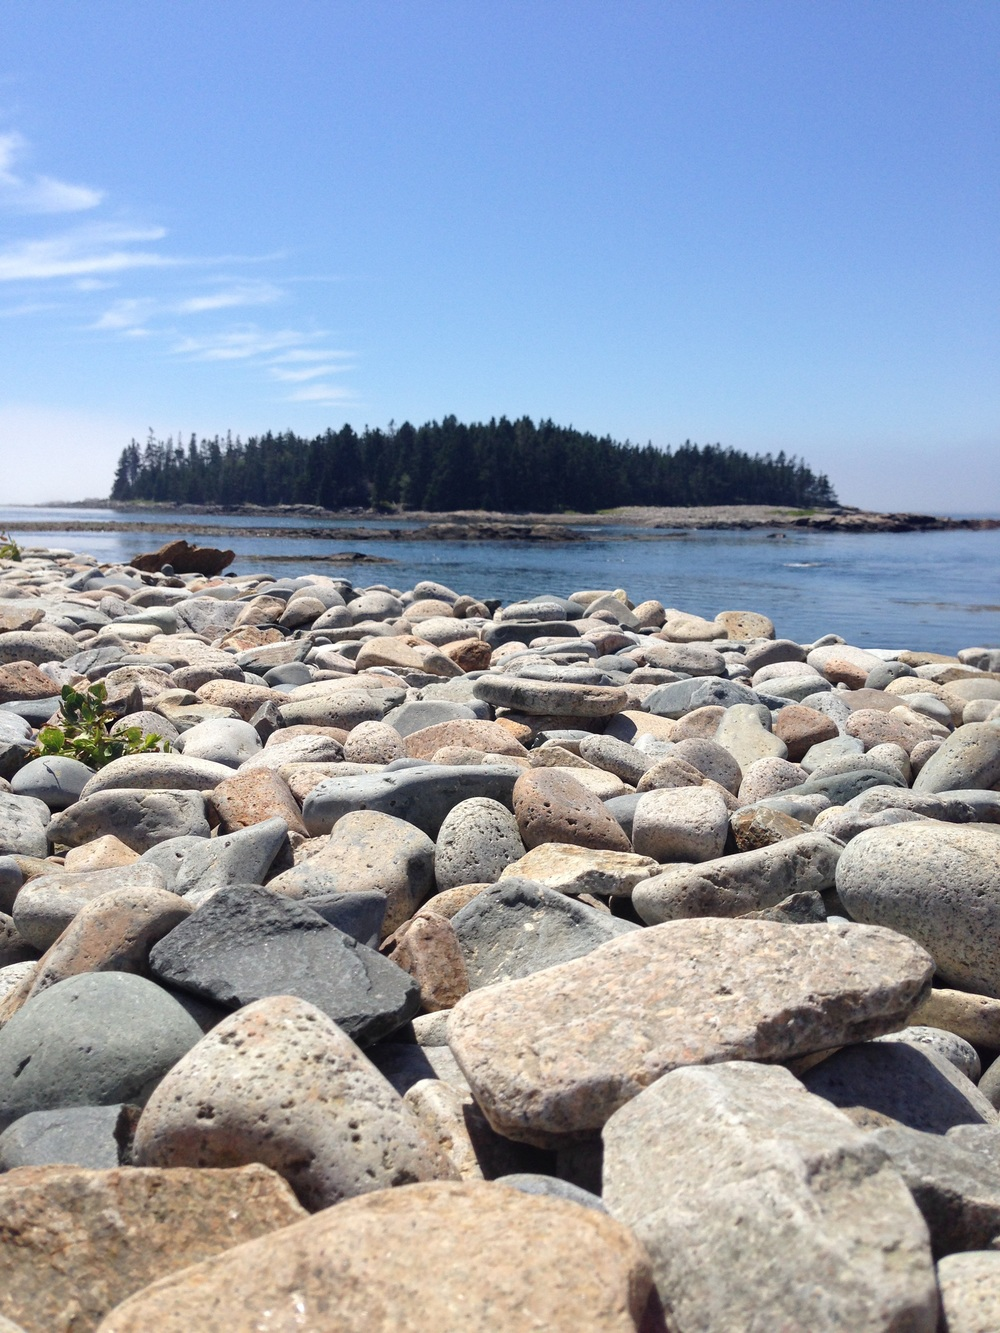 The unique rounded stones on top of the break wall and the pine forested Pond Island in the background.